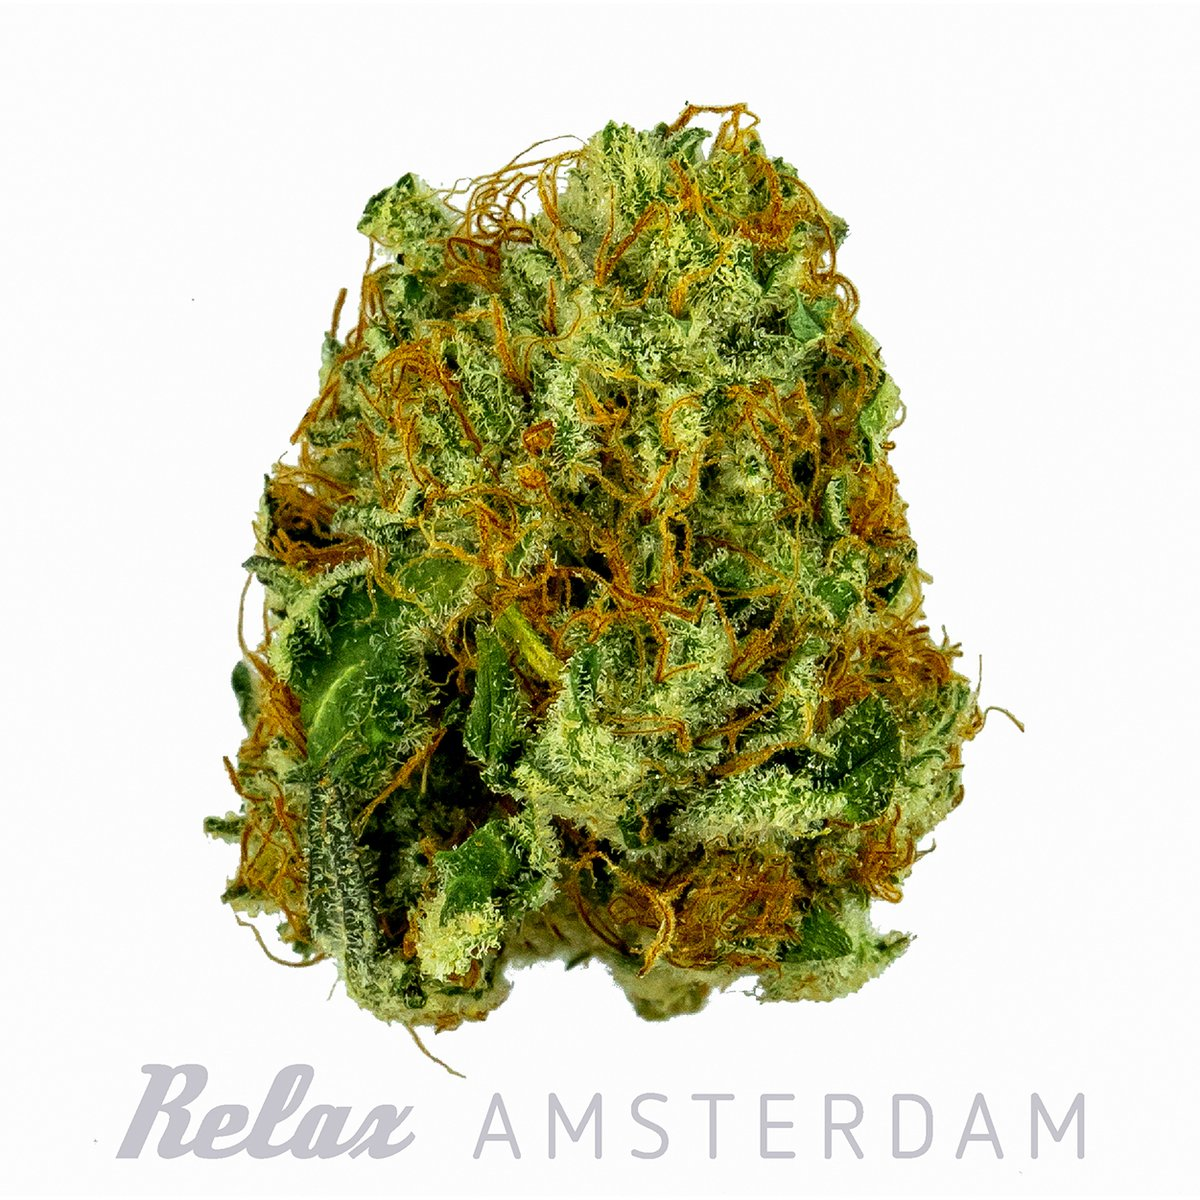 The history of medicinal cannabis goes back to ancient times. Ancient physicians in many parts of the world mixed cannabis into medicine to treat pain and other ailments. Initially, cannabis was reduced to a powder and mixed with wine for administration.<br>http://pic.twitter.com/ucCHVyIvci